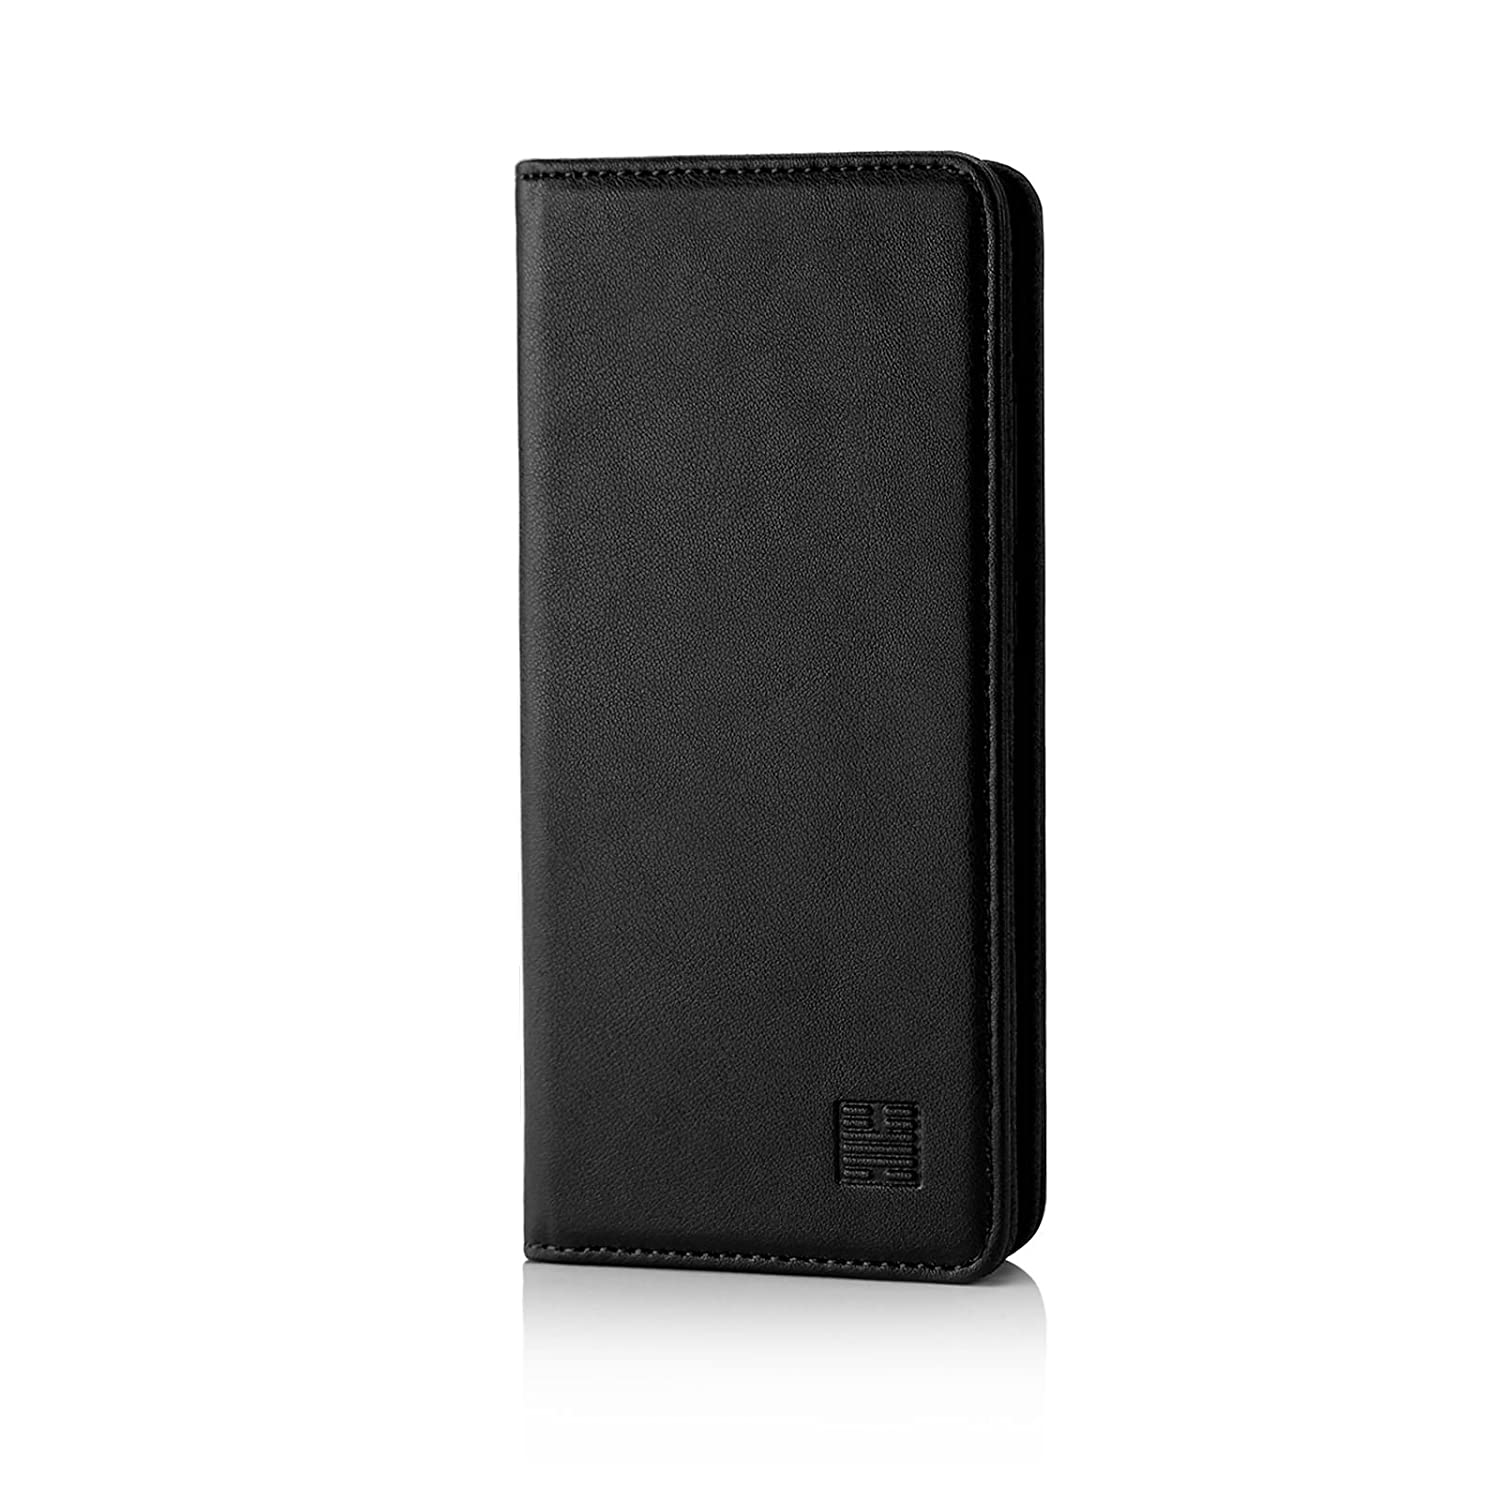 promo code d9589 af501 32nd Classic Series - Real Leather Book Wallet Case Cover for Huawei P10,  Real Leather Design with Card Slot, Magnetic Closure and Built in Stand -  ...